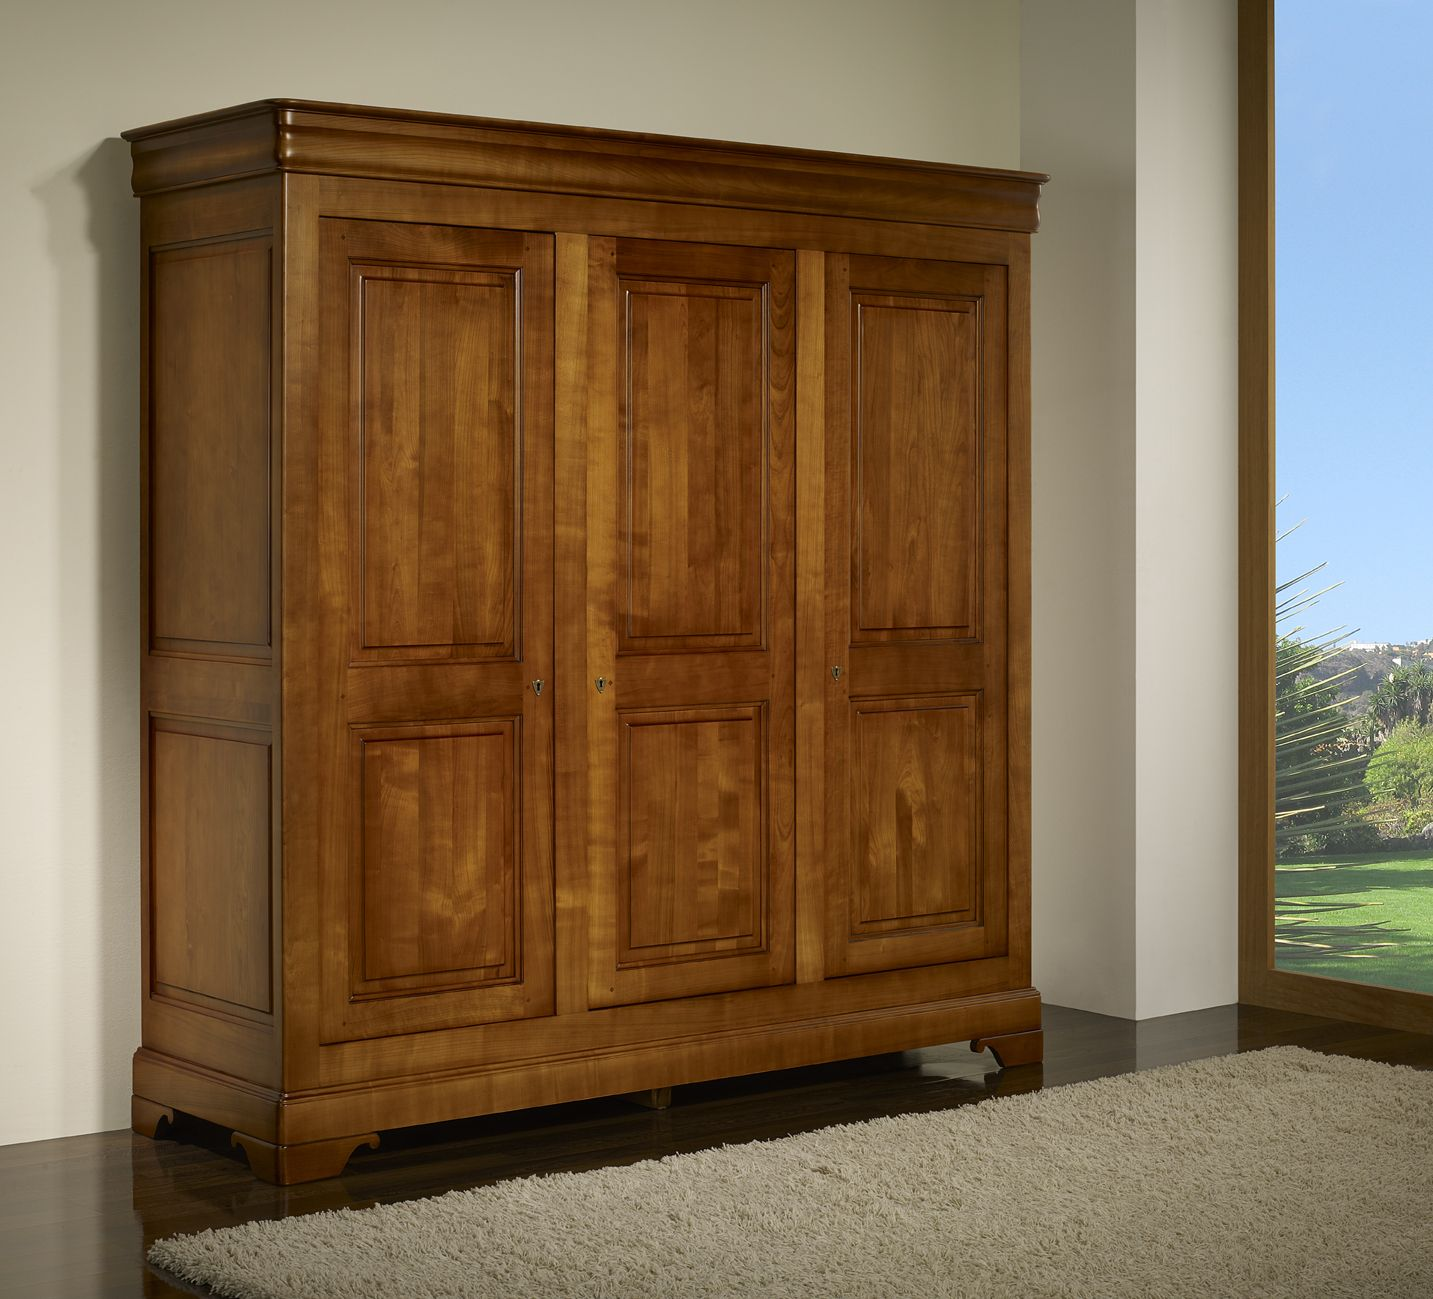 armoire 3 portes anna r alis e en merisier massif de style. Black Bedroom Furniture Sets. Home Design Ideas